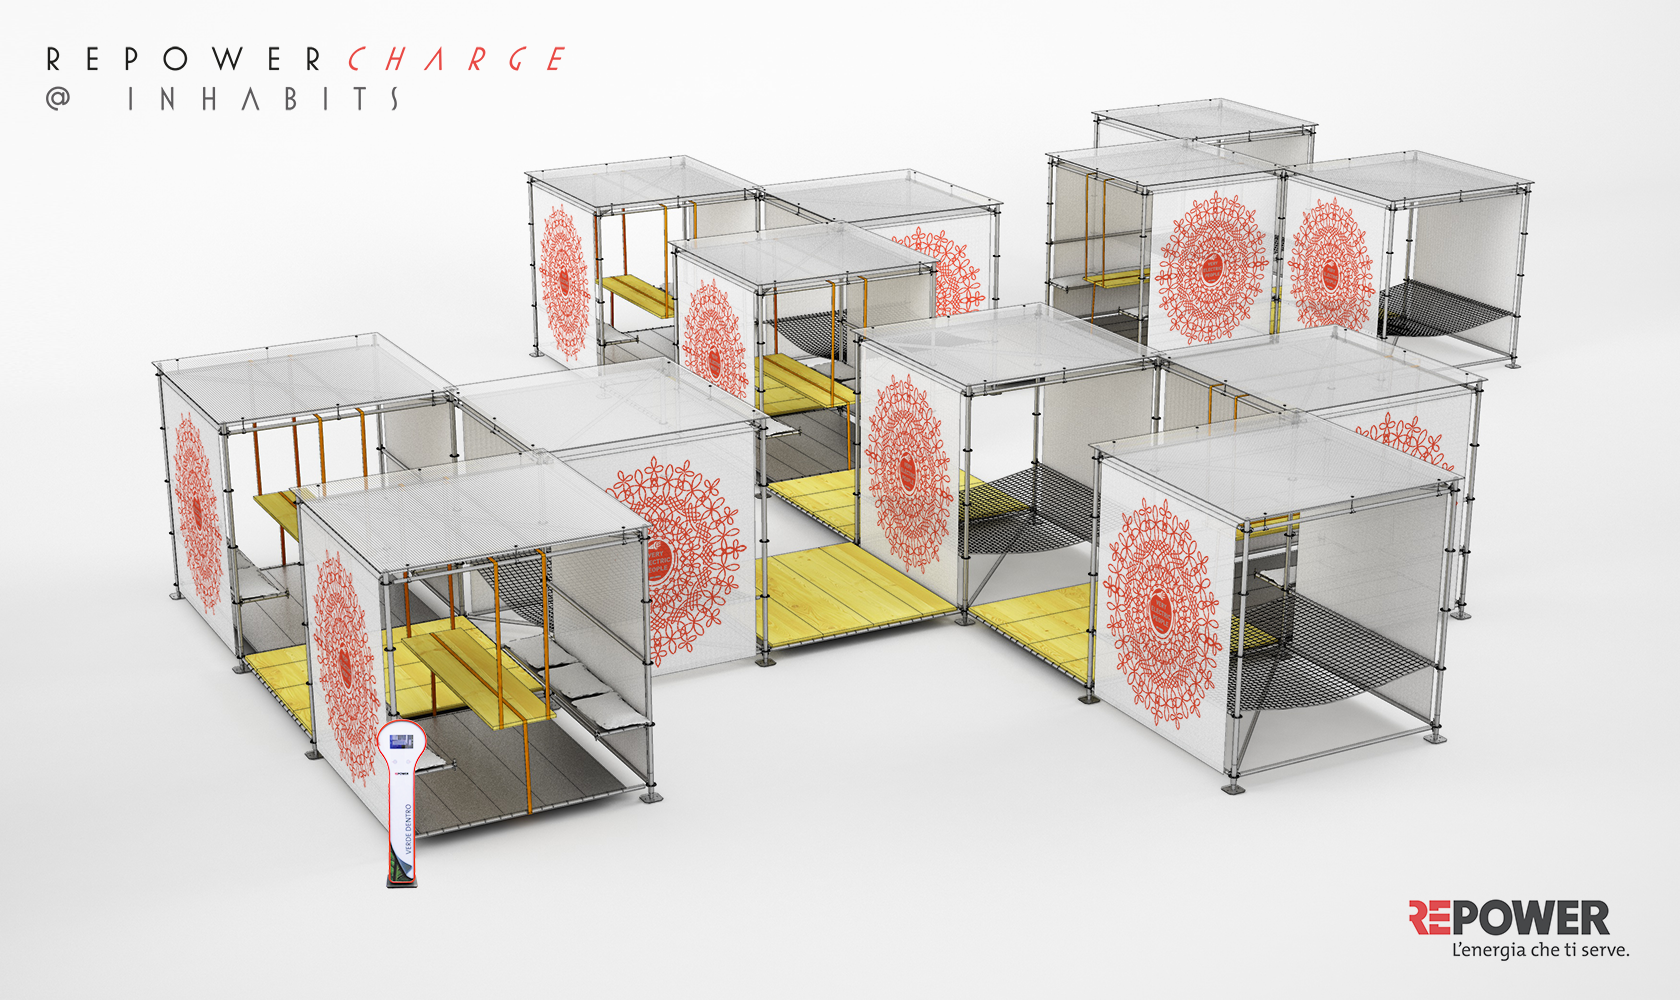 Repowercharge inhabits milano design village for Milano design village